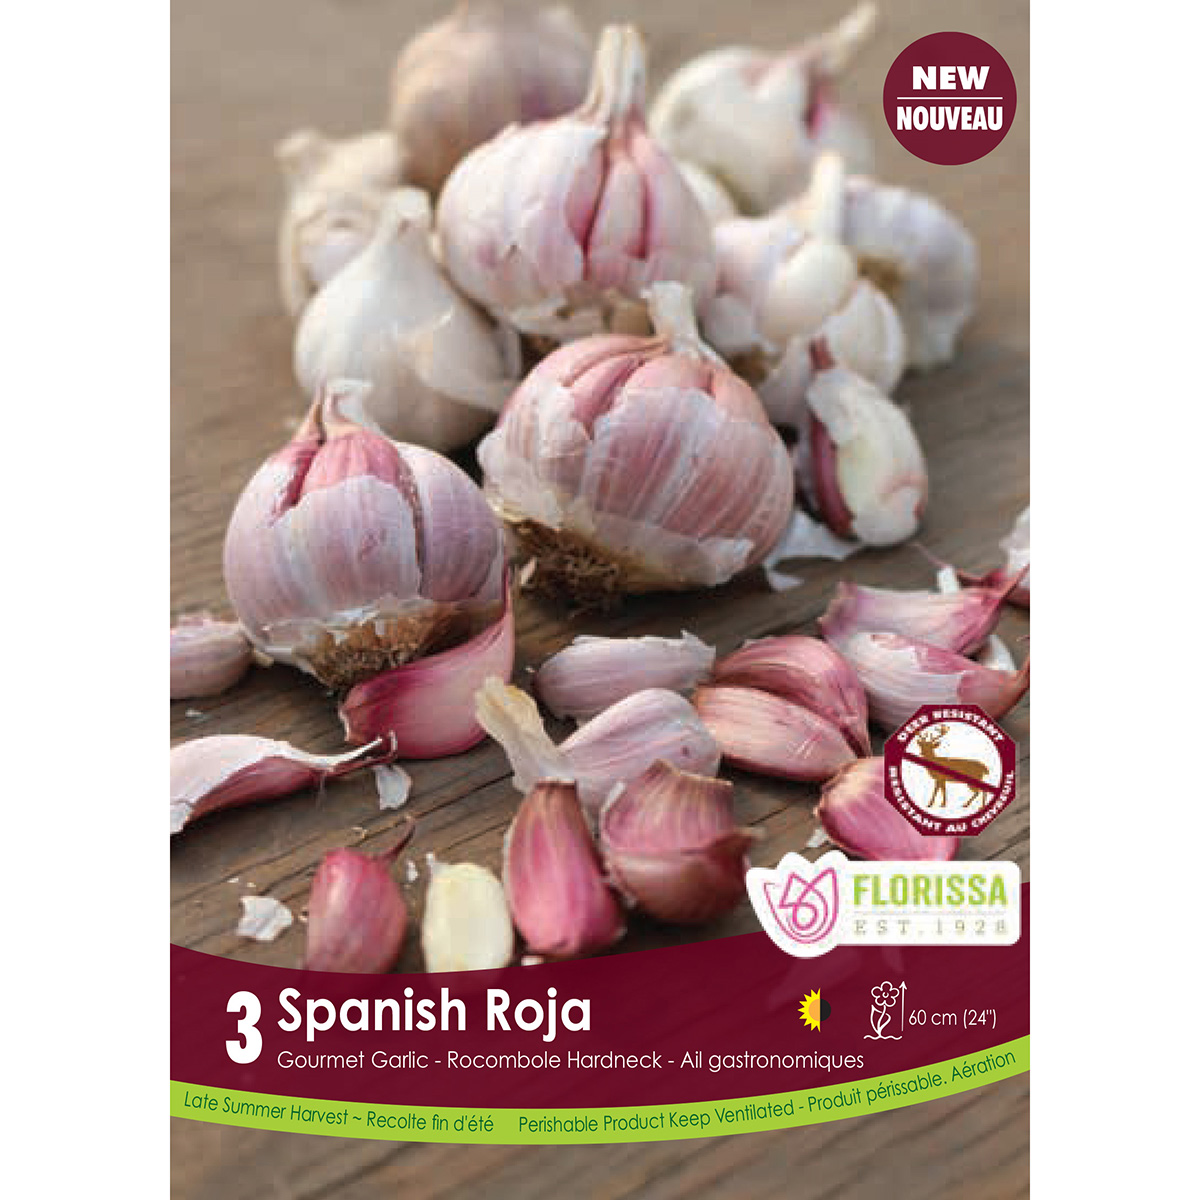 Garlic 'Spanish Roja' Bulbs